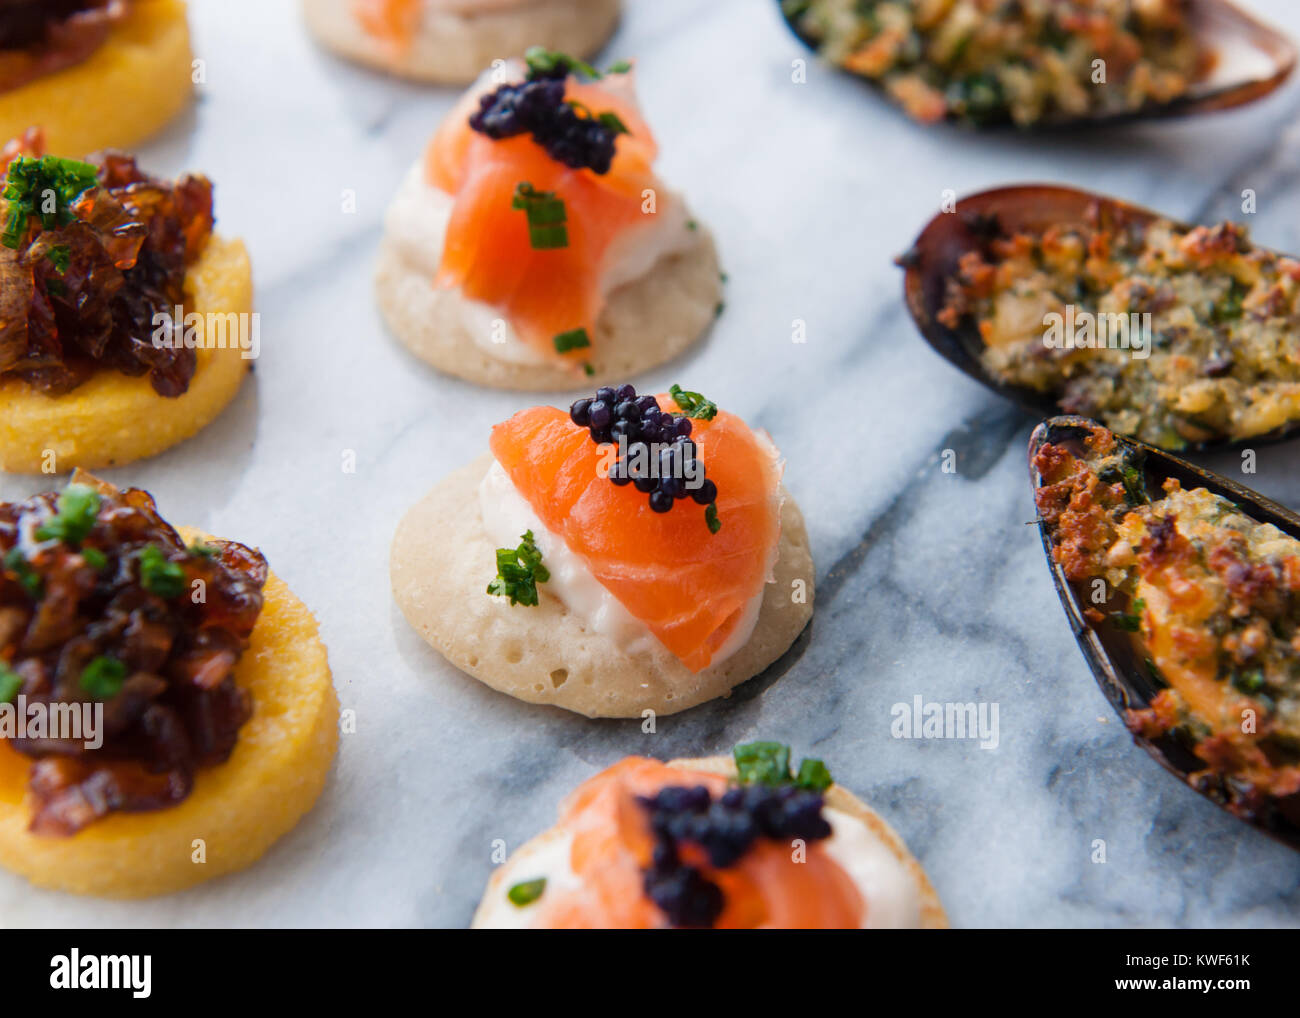 canapes on grey vein marble - Stock Image